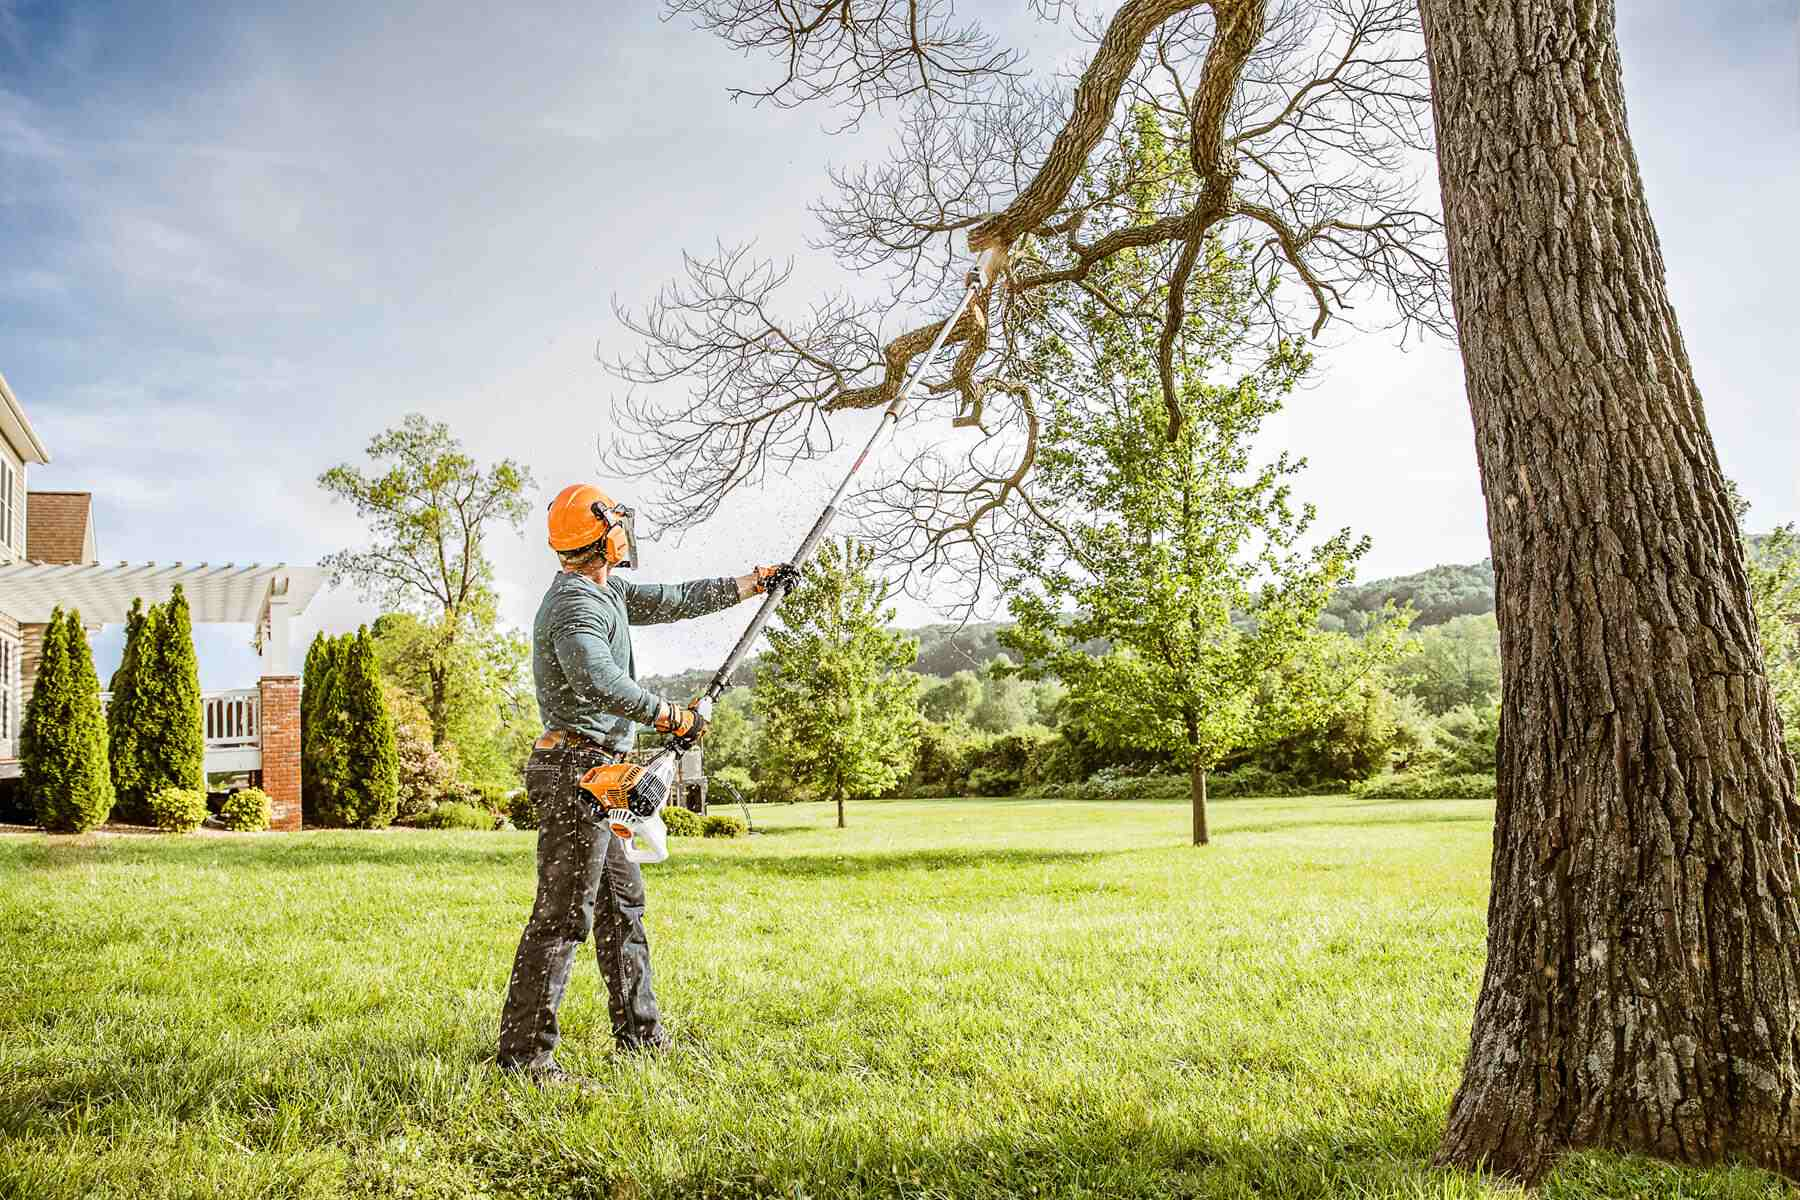 Tree Pruning-Daytona Beach's Best Tree Trimming and Tree Removal Services-We Offer Tree Trimming Services, Tree Removal, Tree Pruning, Tree Cutting, Residential and Commercial Tree Trimming Services, Storm Damage, Emergency Tree Removal, Land Clearing, Tree Companies, Tree Care Service, Stump Grinding, and we're the Best Tree Trimming Company Near You Guaranteed!